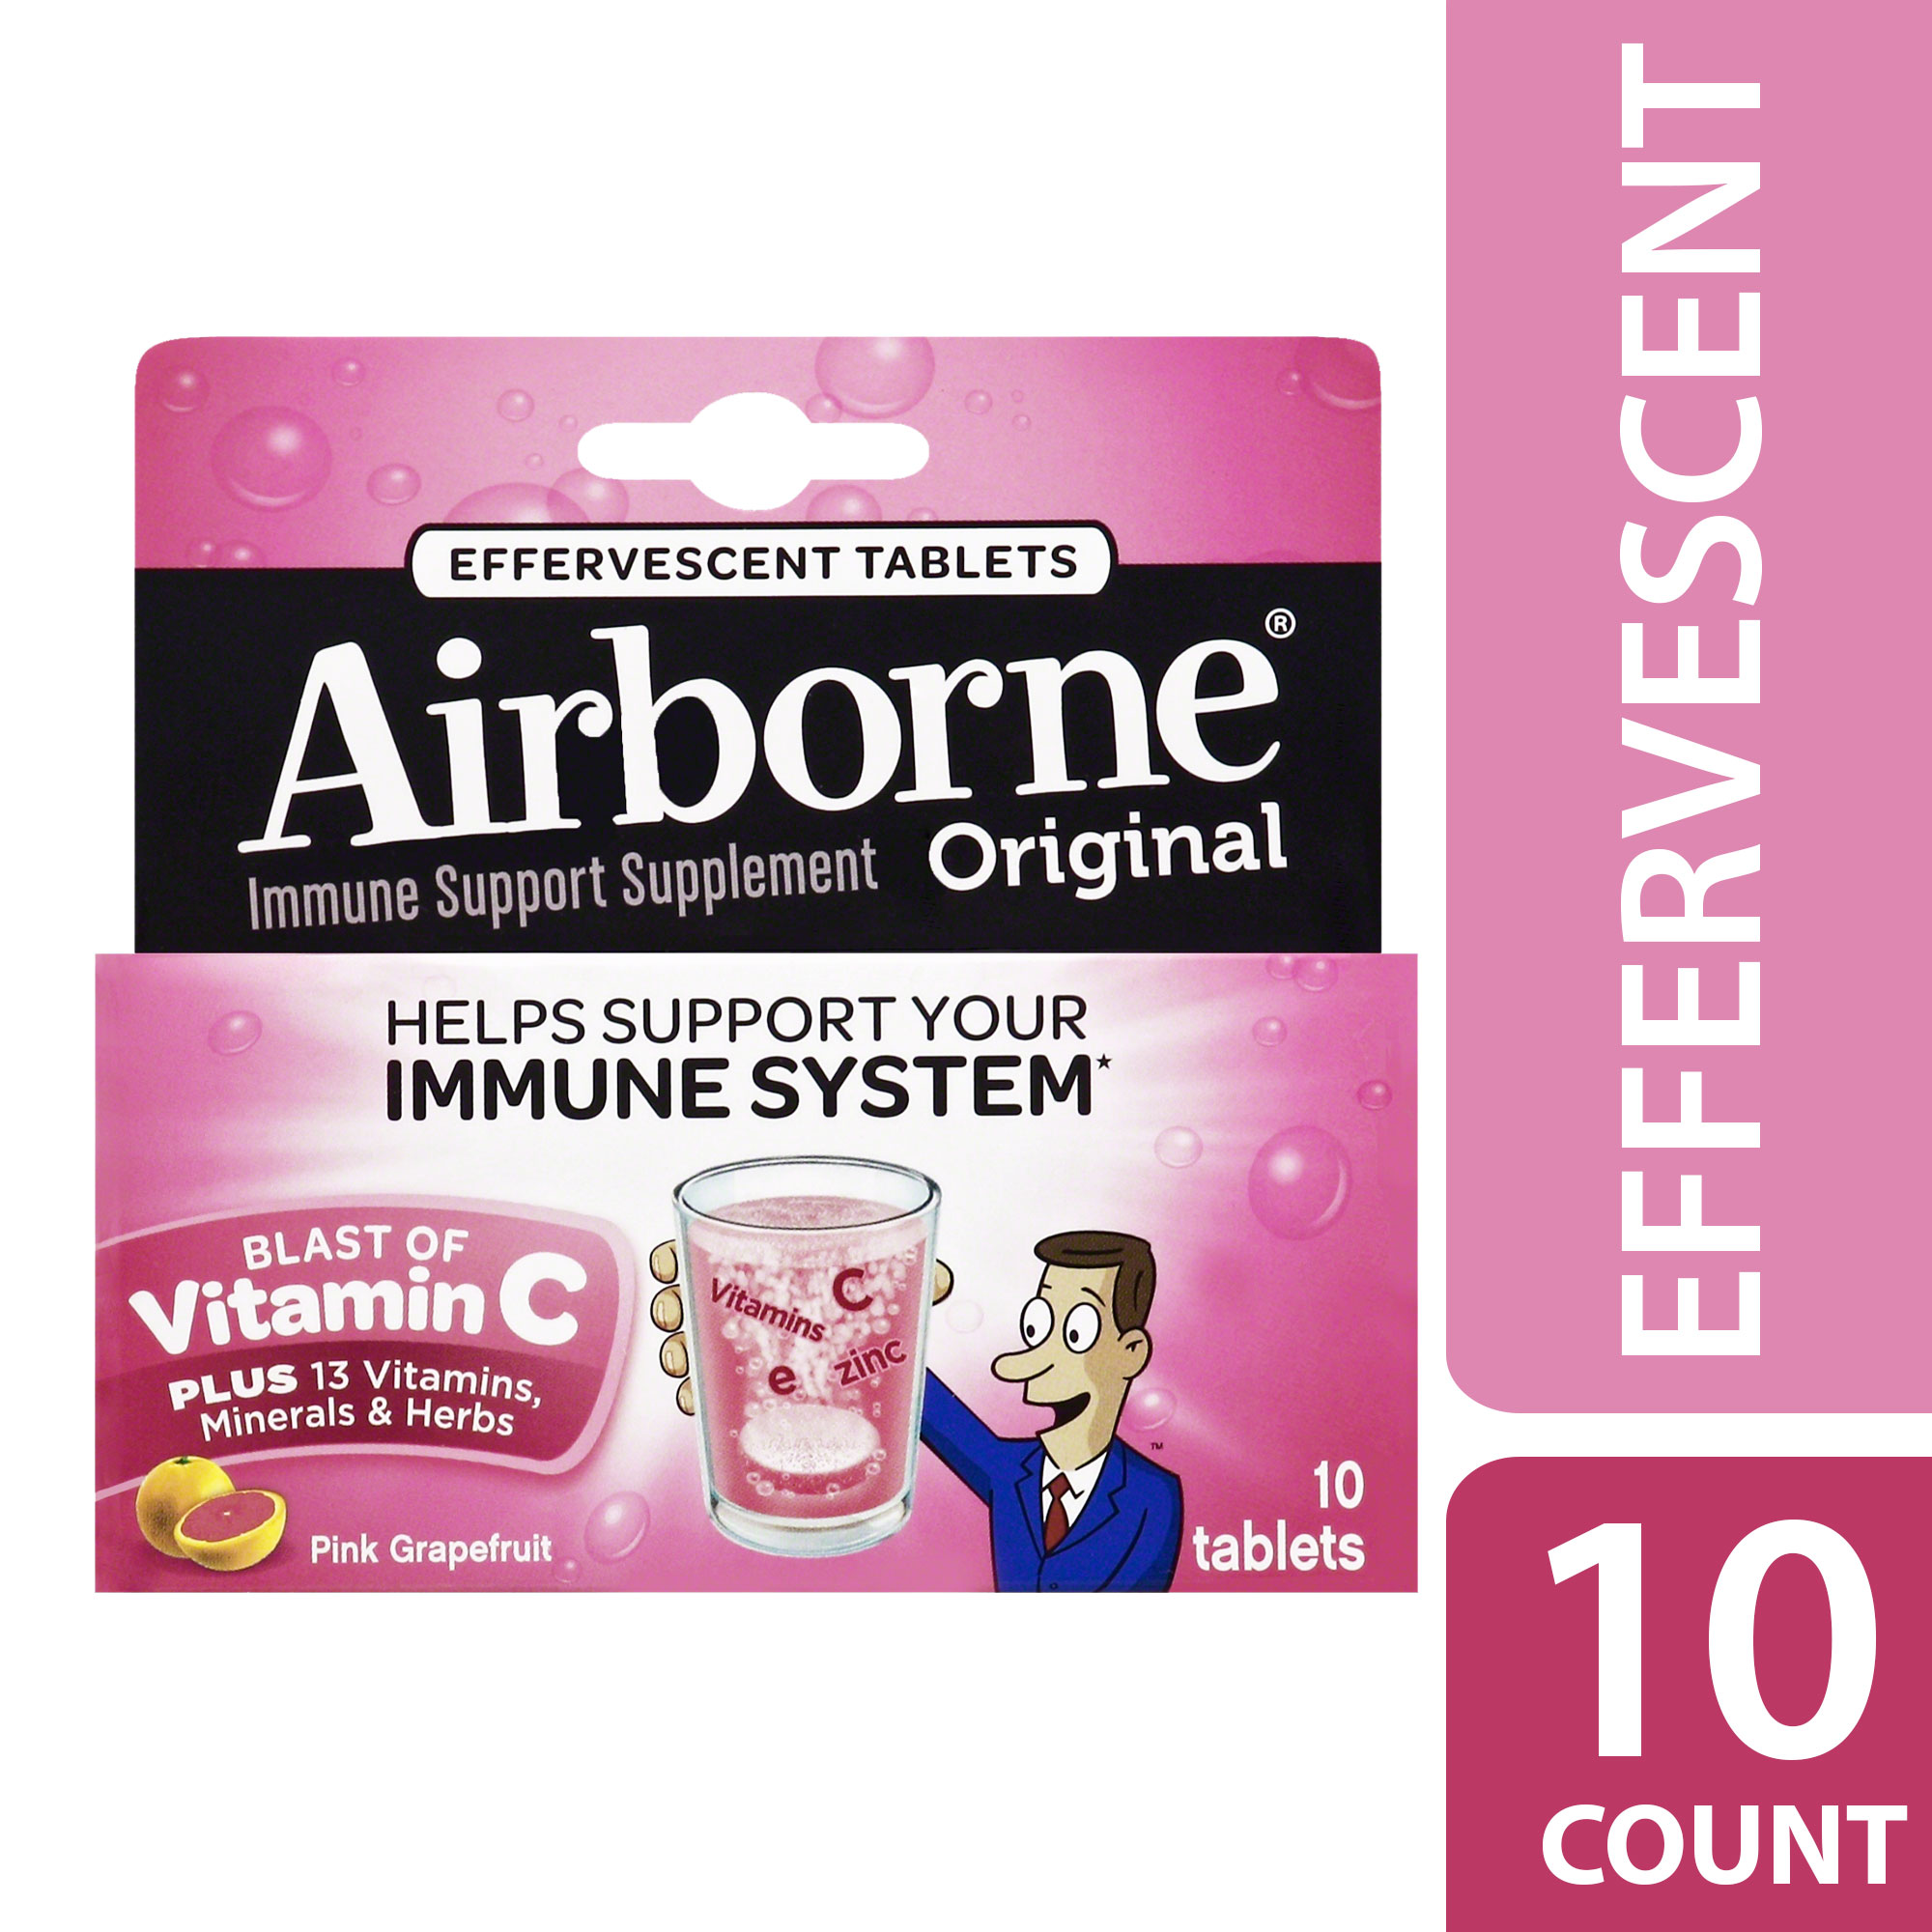 Airborne Pink Grapefruit Effervescent Tablets, 10 count - 1000mg of Vitamin C - Immune Support Supplement